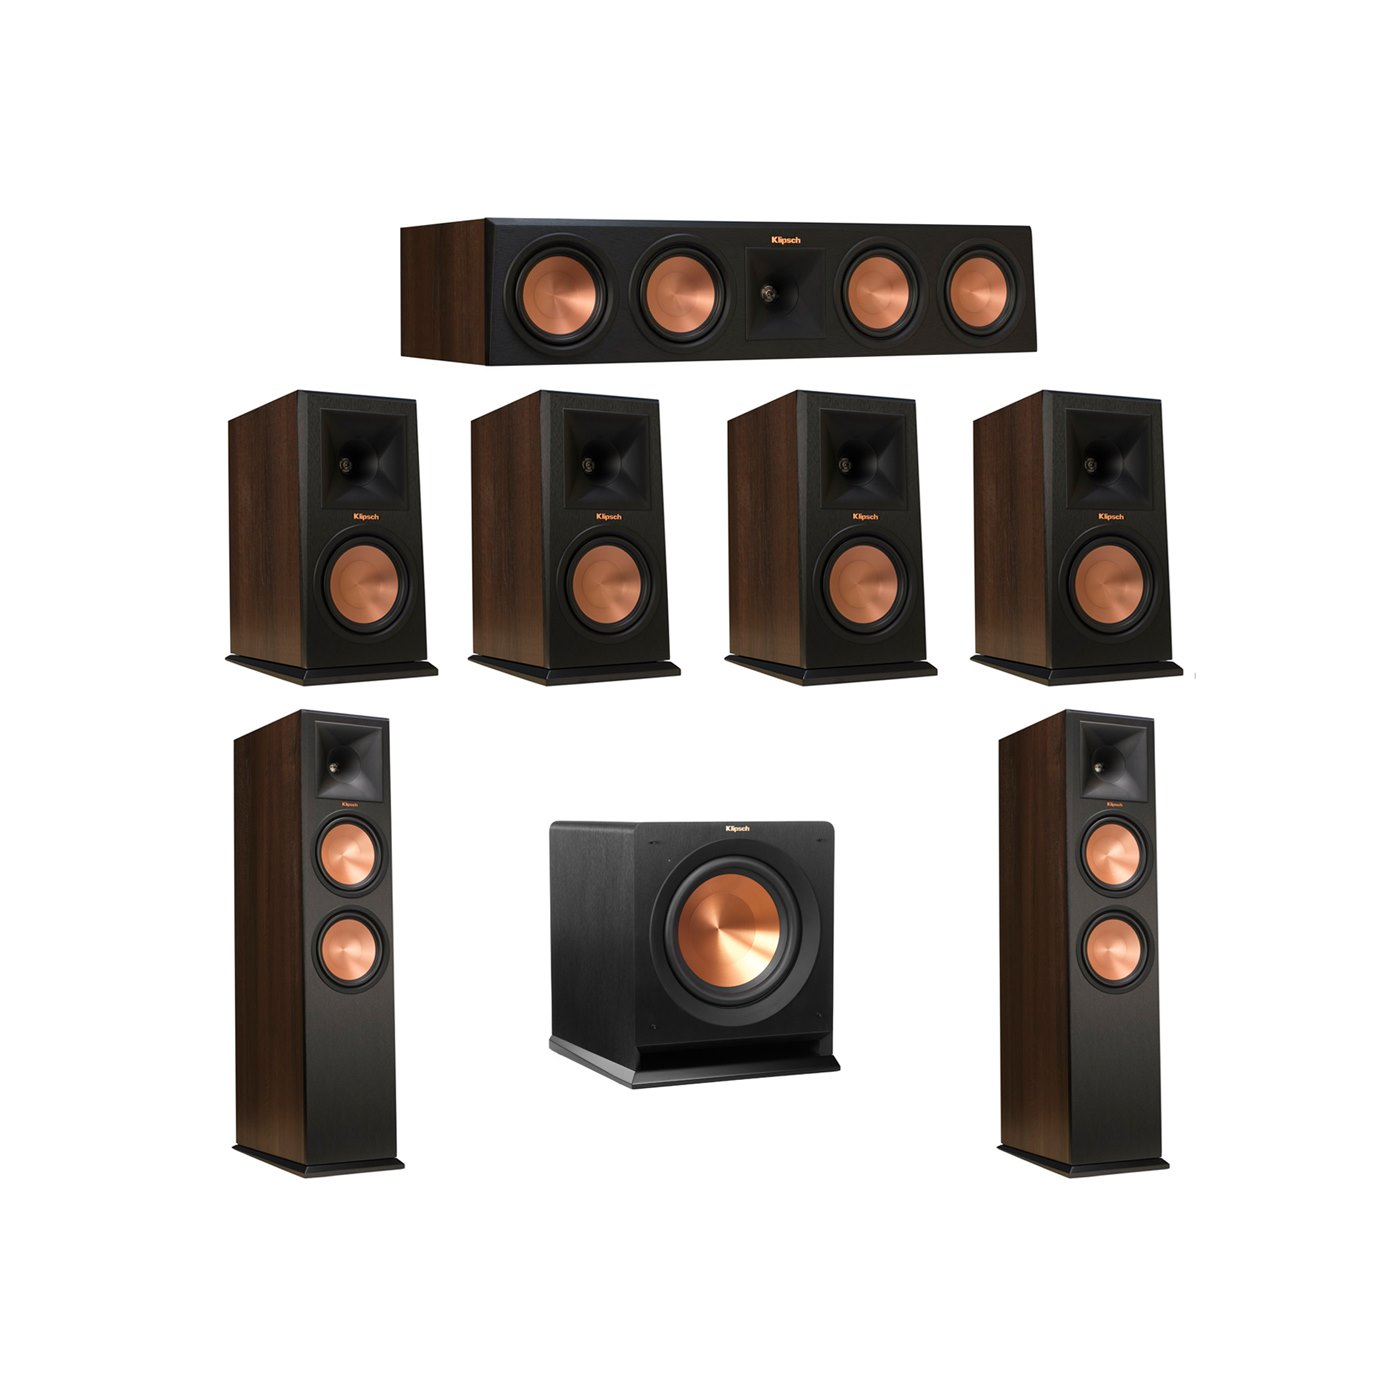 Klipsch 7.1 Walnut System with 2 RP-280F Tower Speakers, 1 RP-450C Center Speaker, 4 Klipsch RP-160M Bookshelf Speakers, 1 Klipsch R-110SW Subwoofer